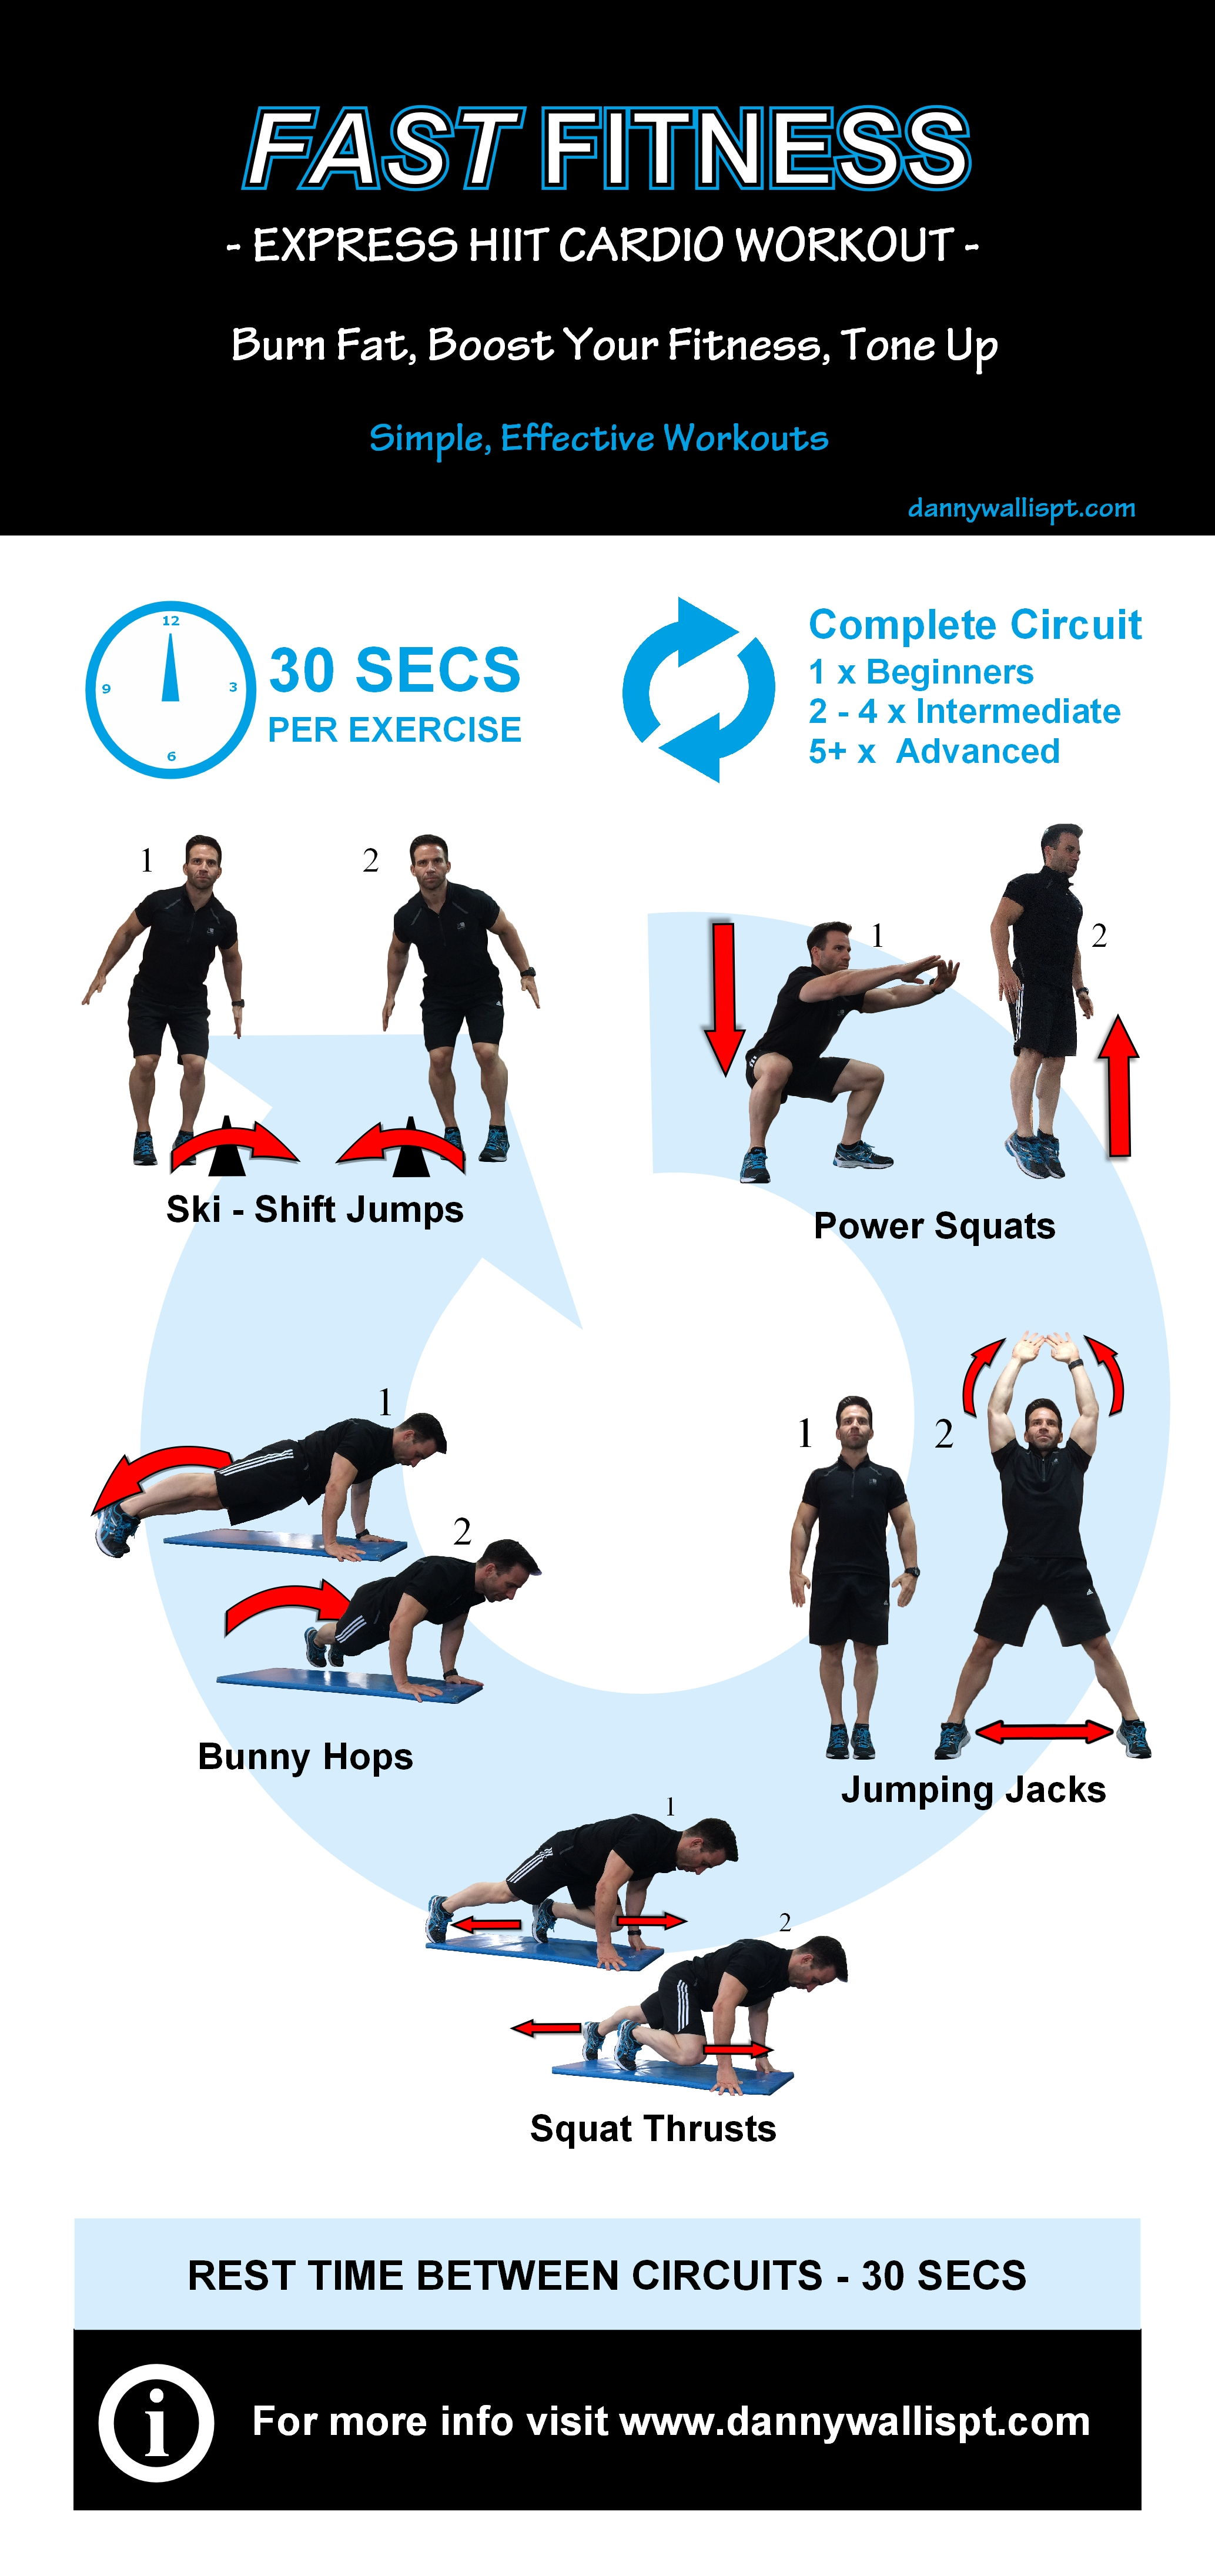 Fast Fitness HIIT Cardio Workout